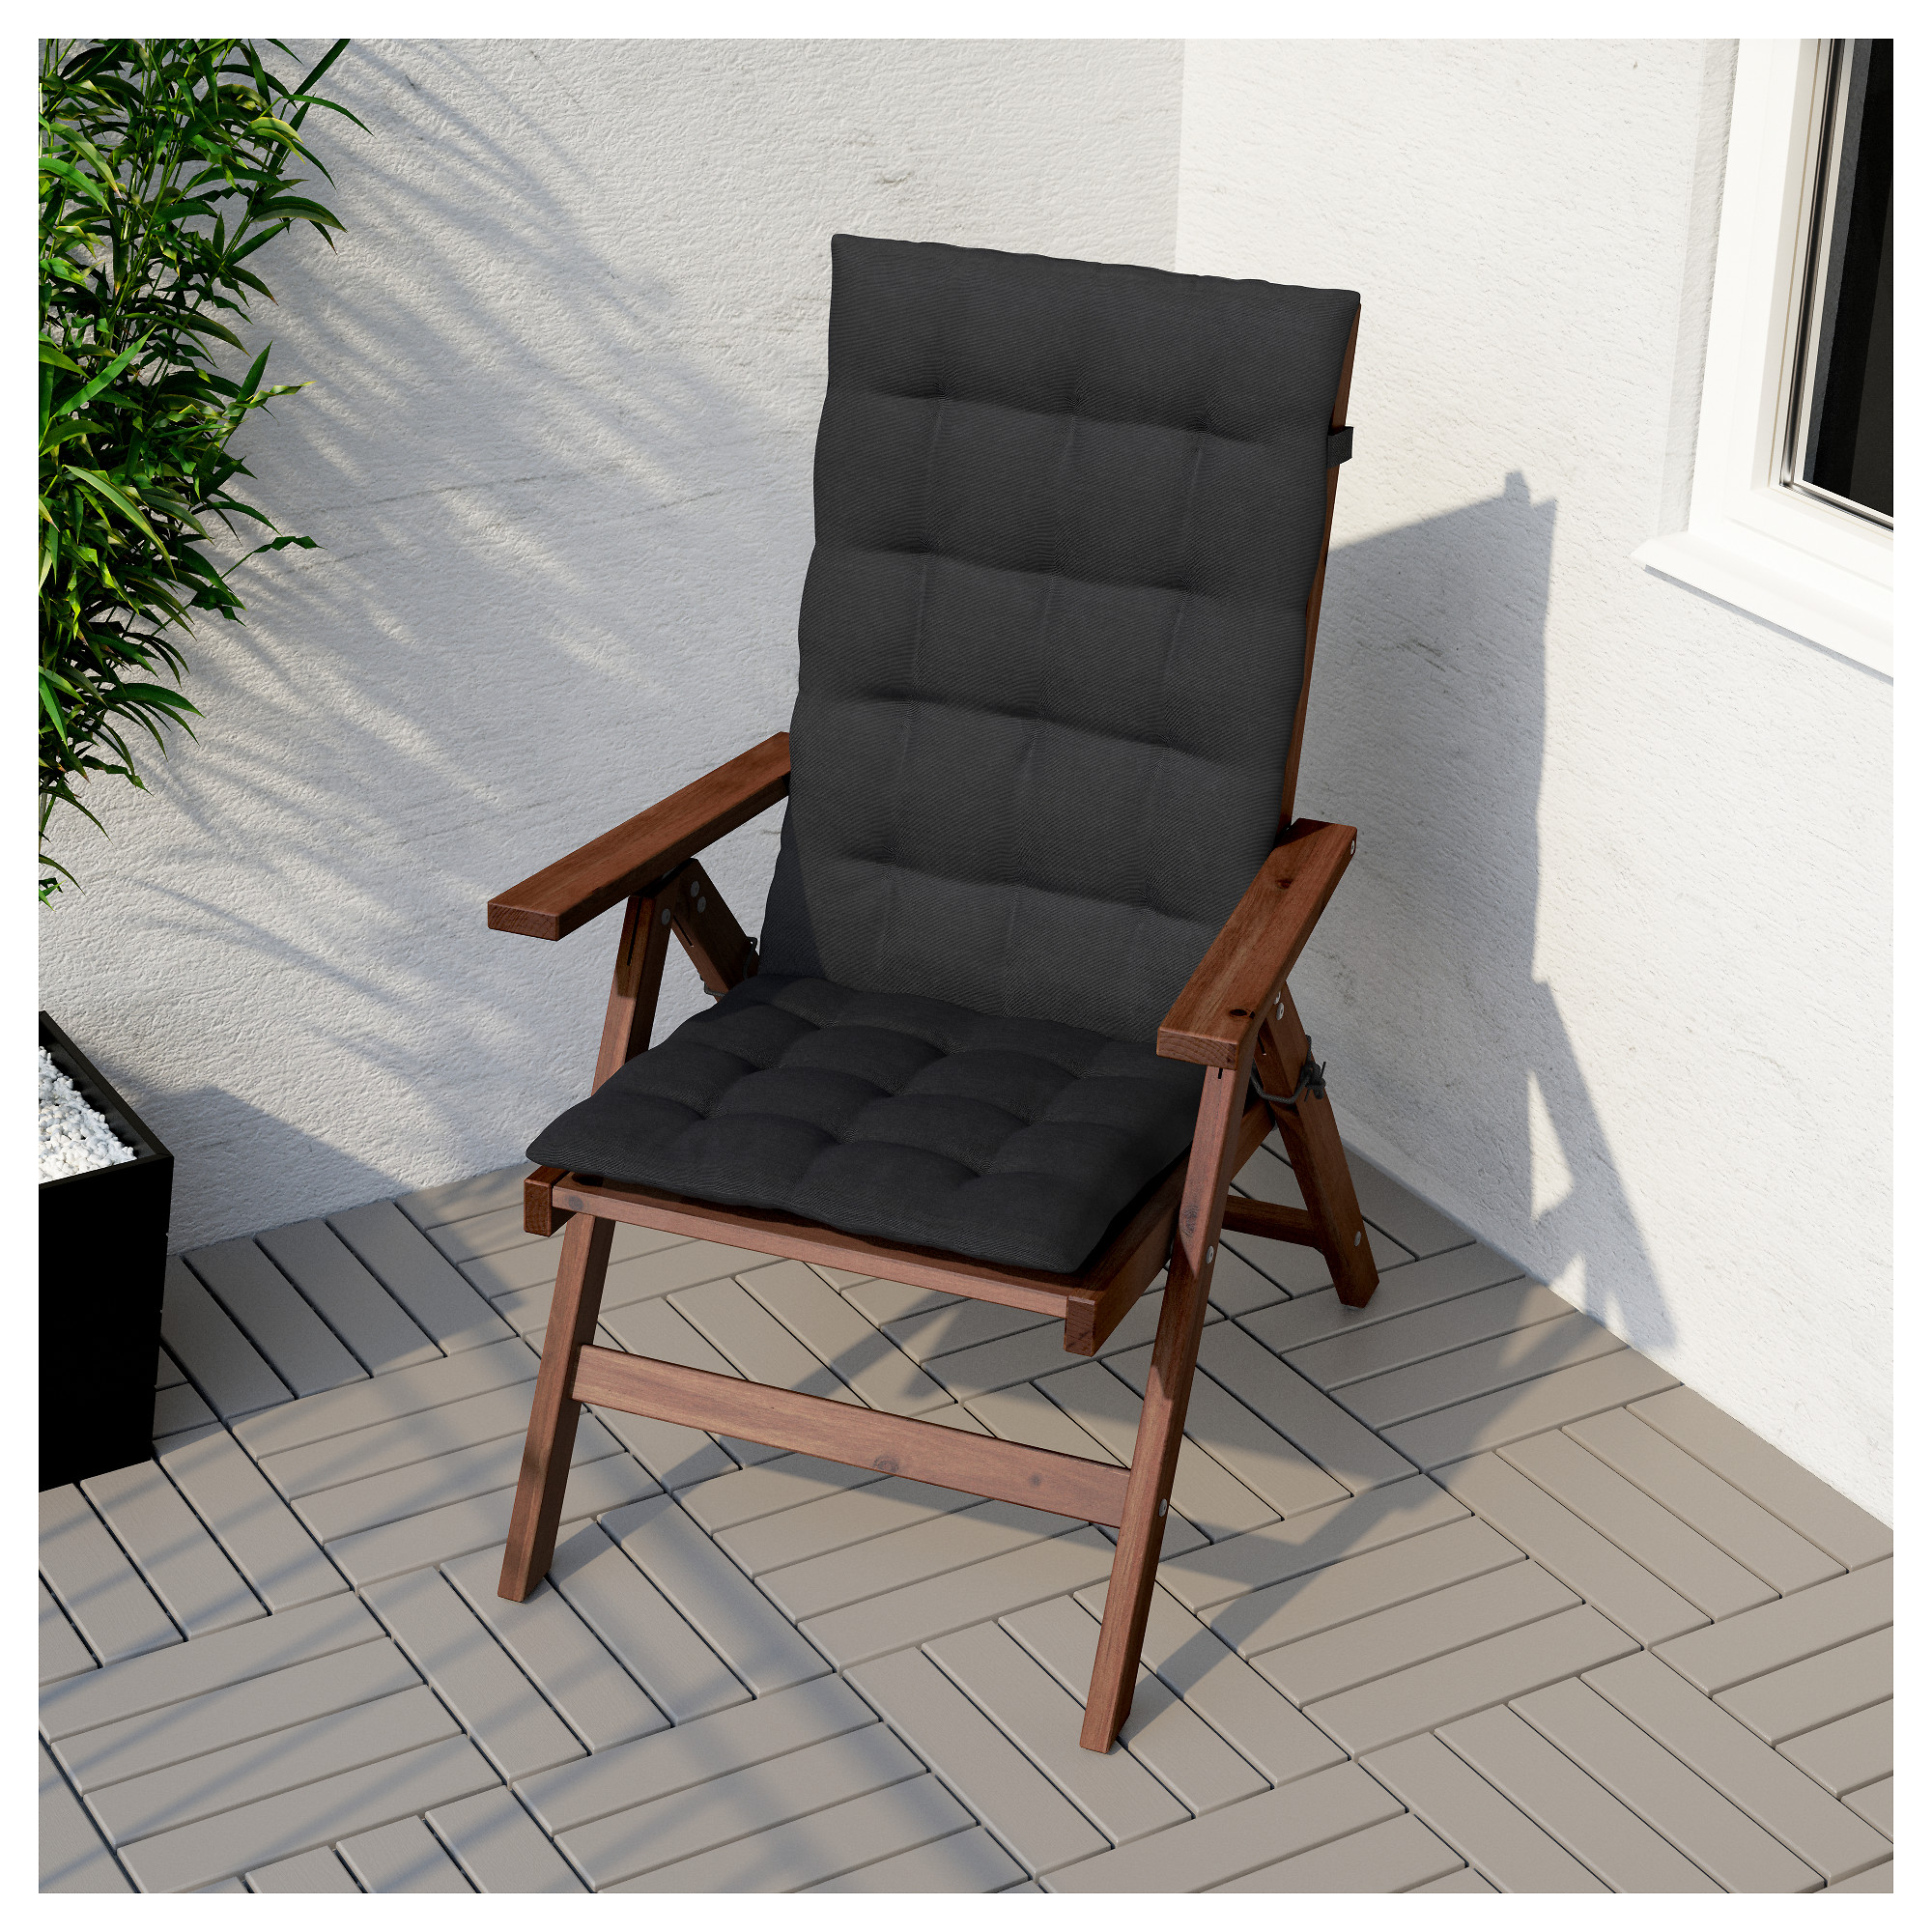 "a""pplara– reclining chair outdoor foldable brown stained ikea"